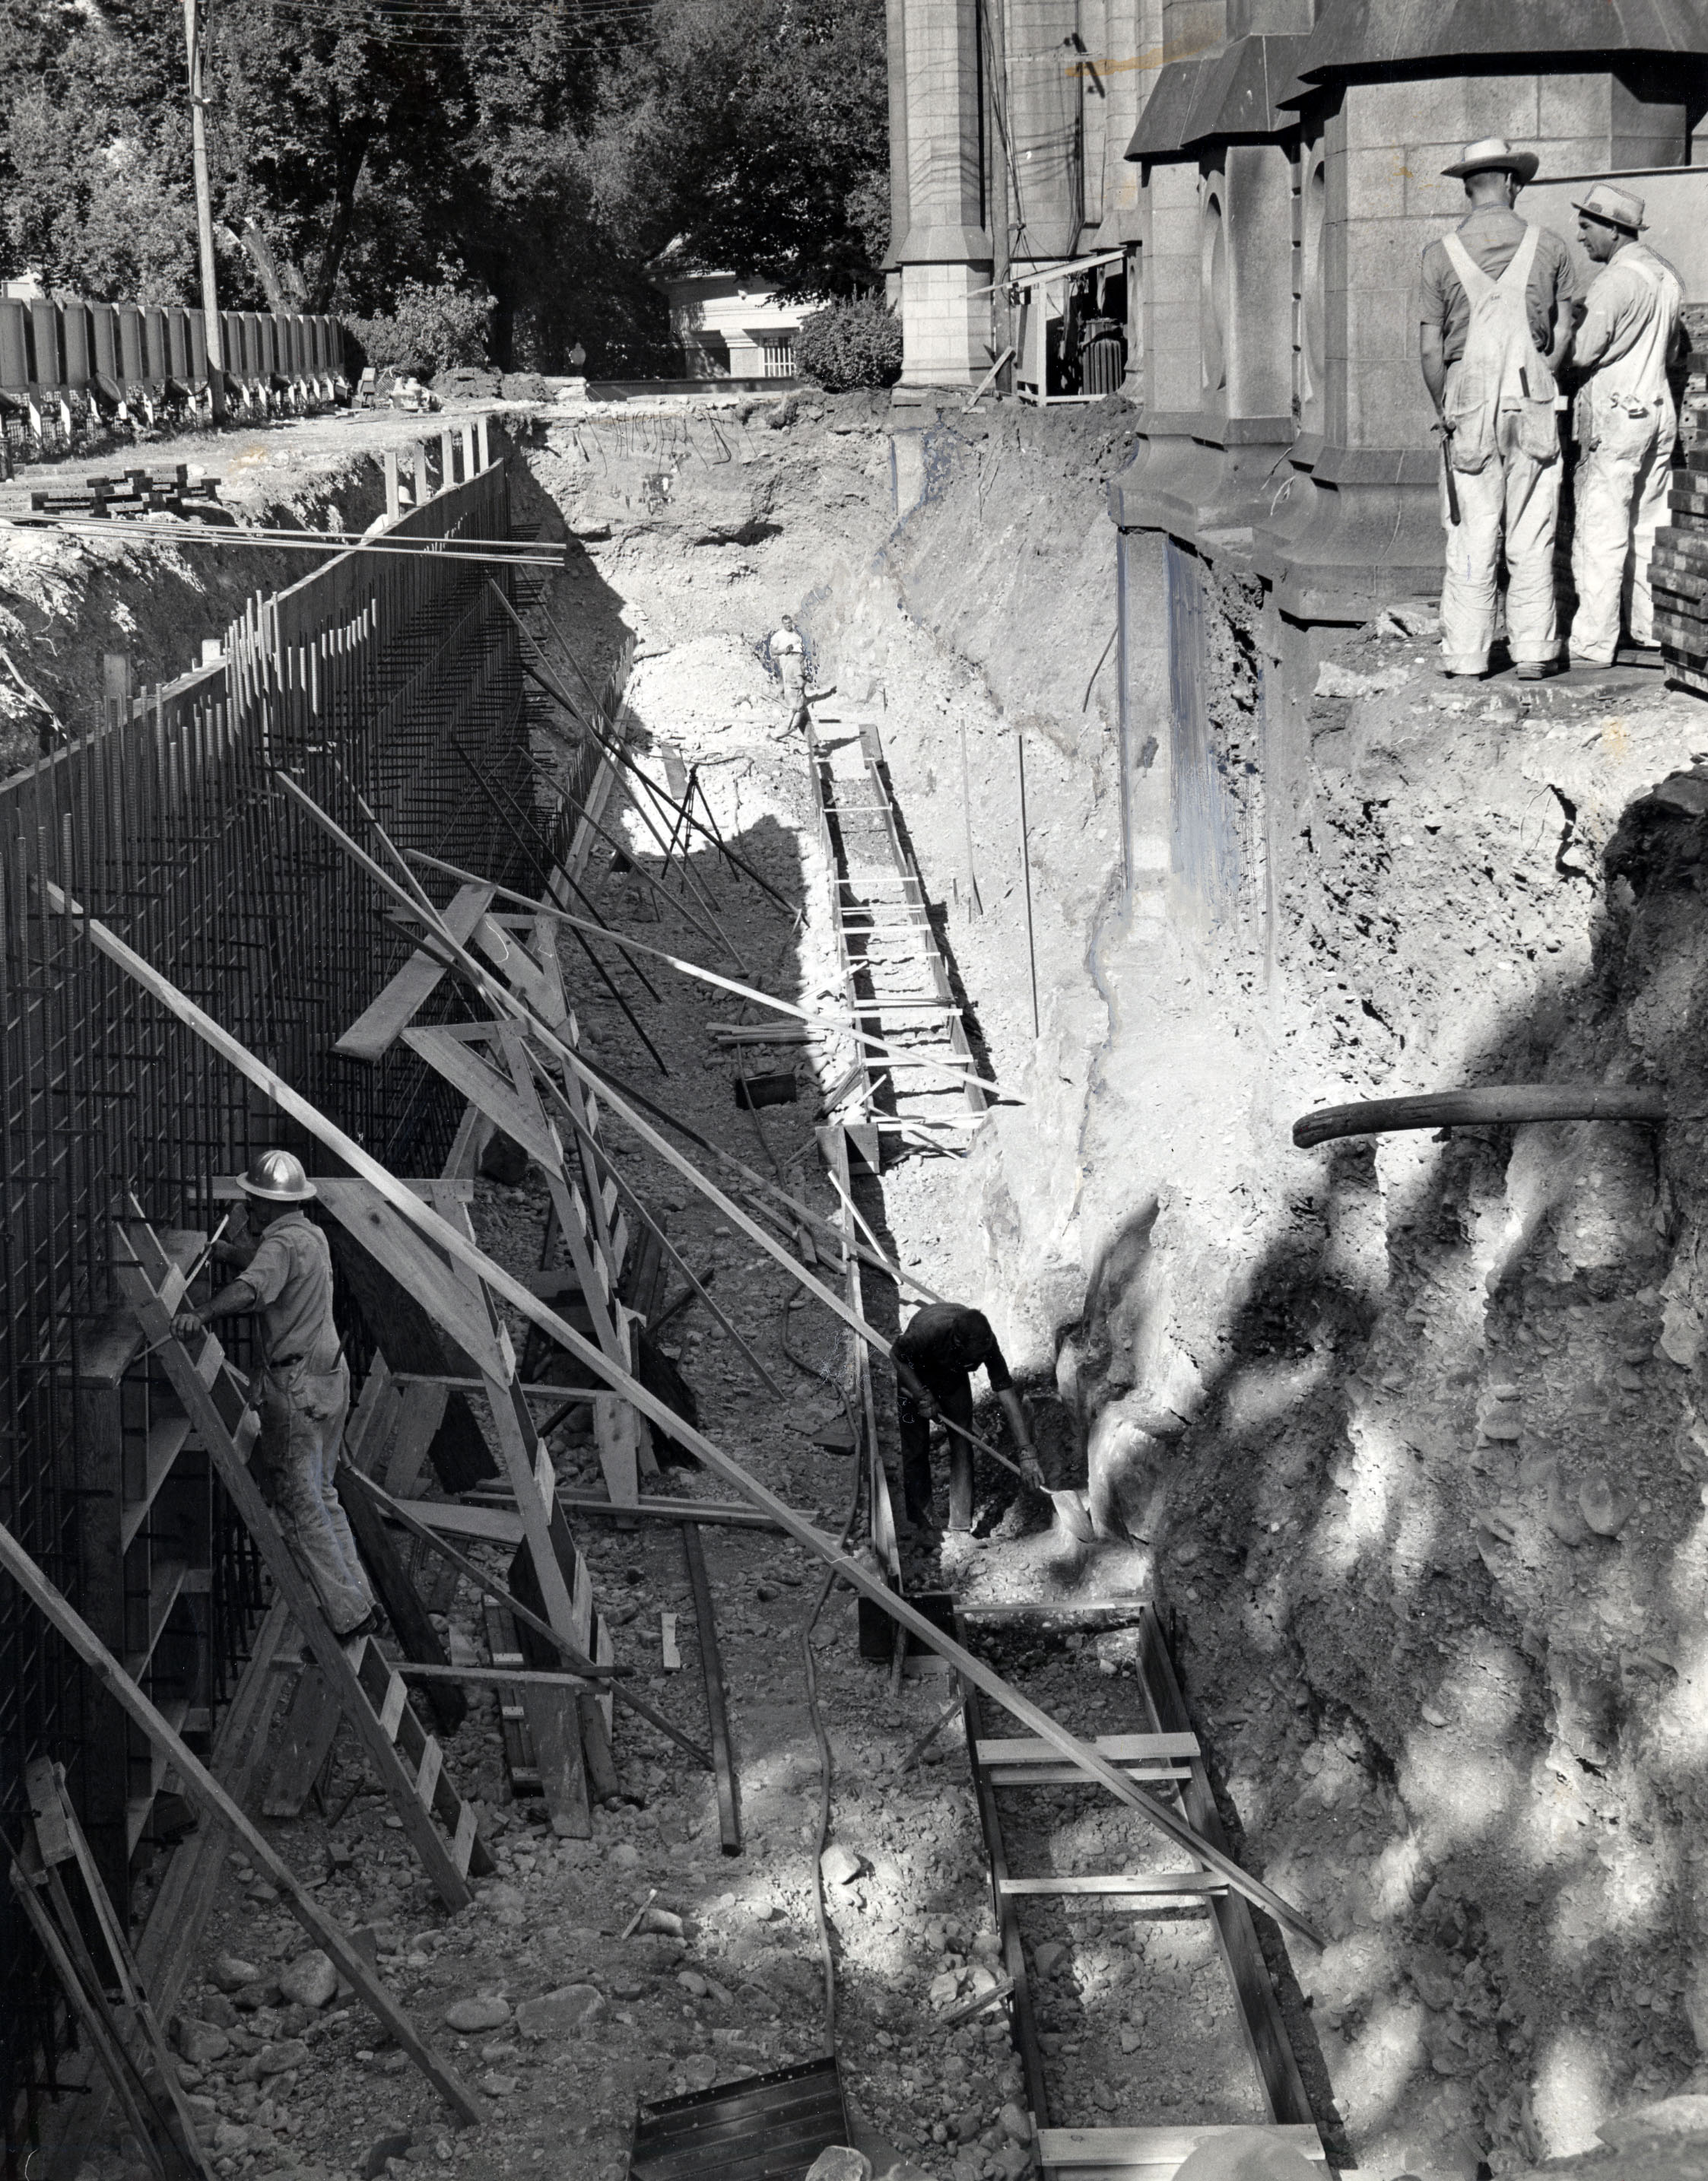 Workmen set forms for new entrance to south side of the Salt Lake Temple, exposing base stones 20 feet thick that hold up granite walls. Sept. 15, 1962 Ralph T. Clark, Deseret News archives